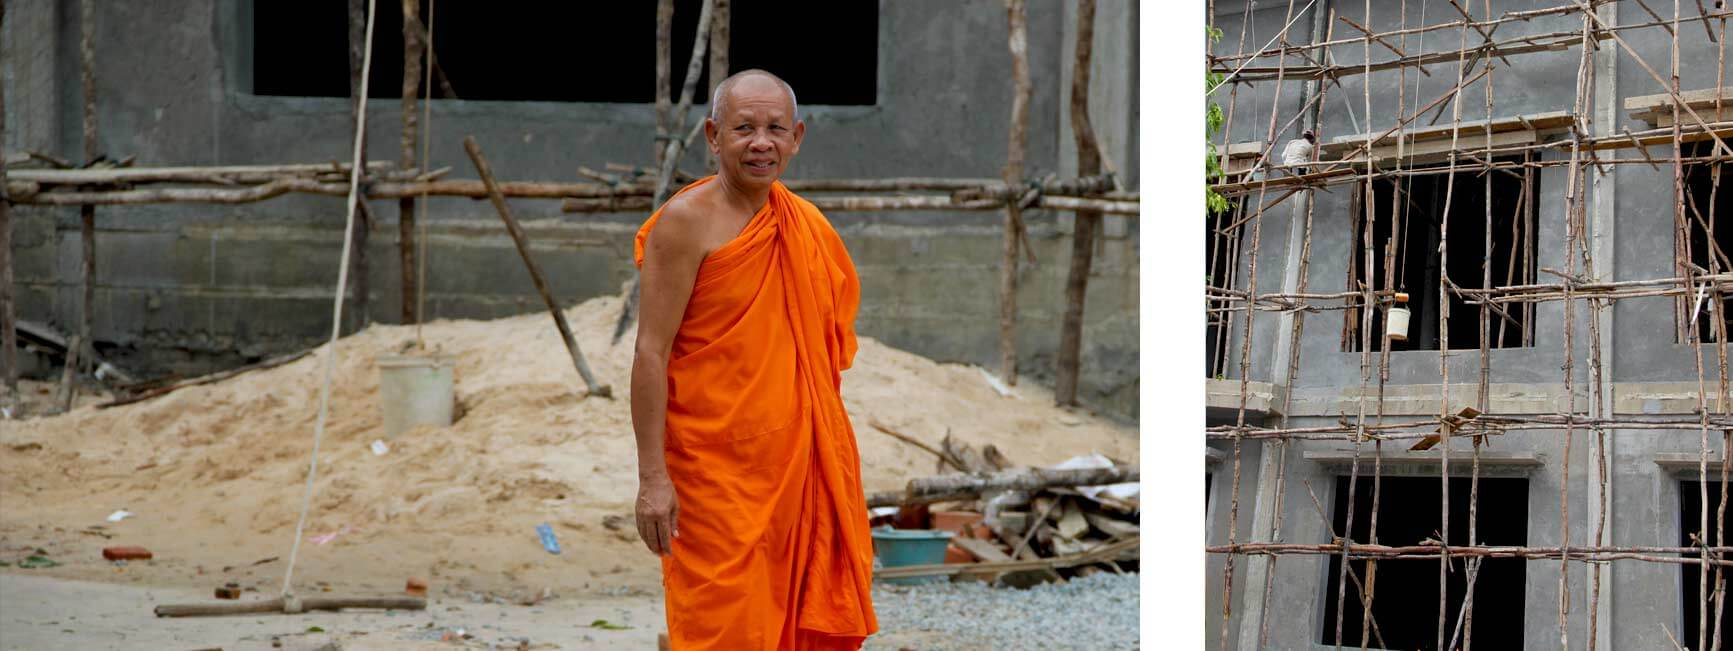 Siem Reap - monk at site